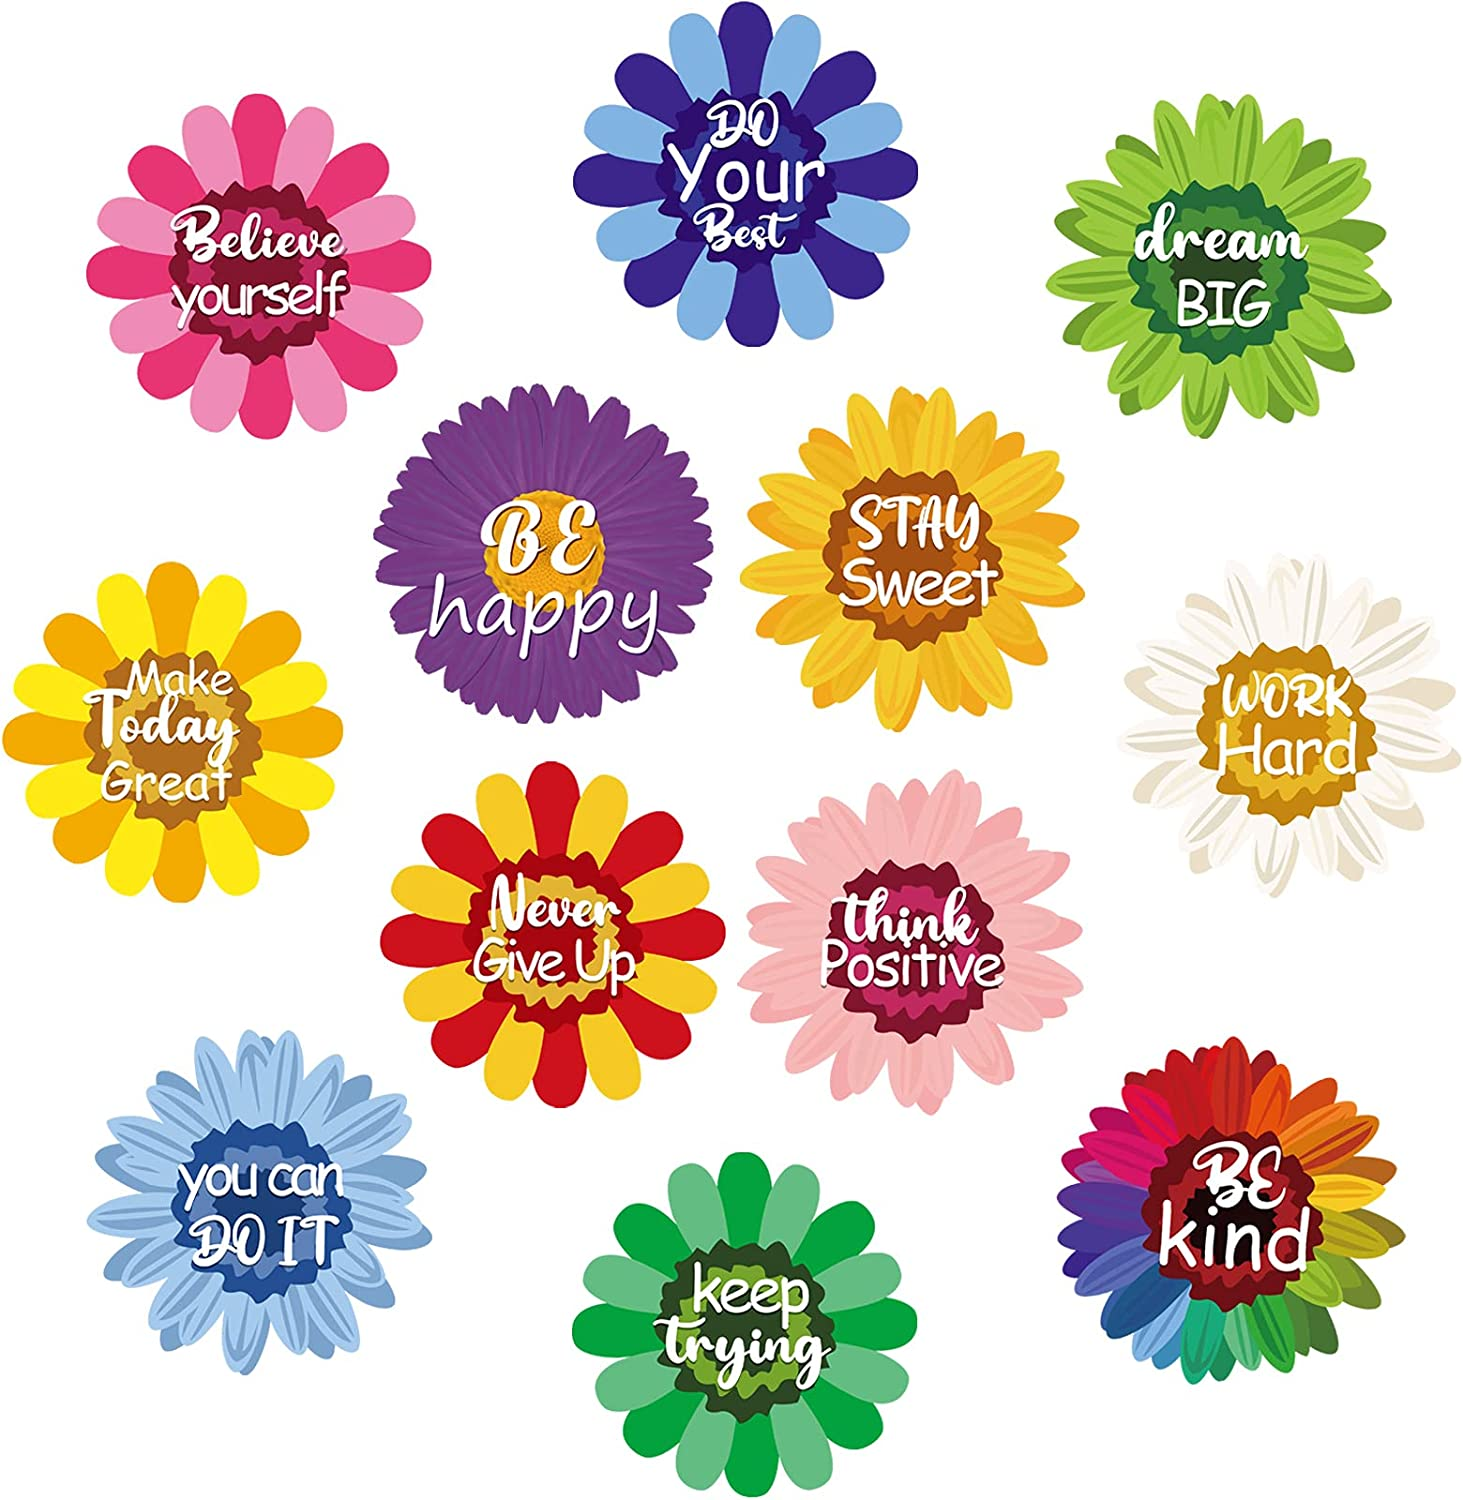 36 Pieces Summer Sun Flower Cutouts with Growth Mindset Confetti Positive Sayings Accents Colorful Flowers Cutouts Motivational Inspirational Quote Cards for Classroom Bulletin Board Decor